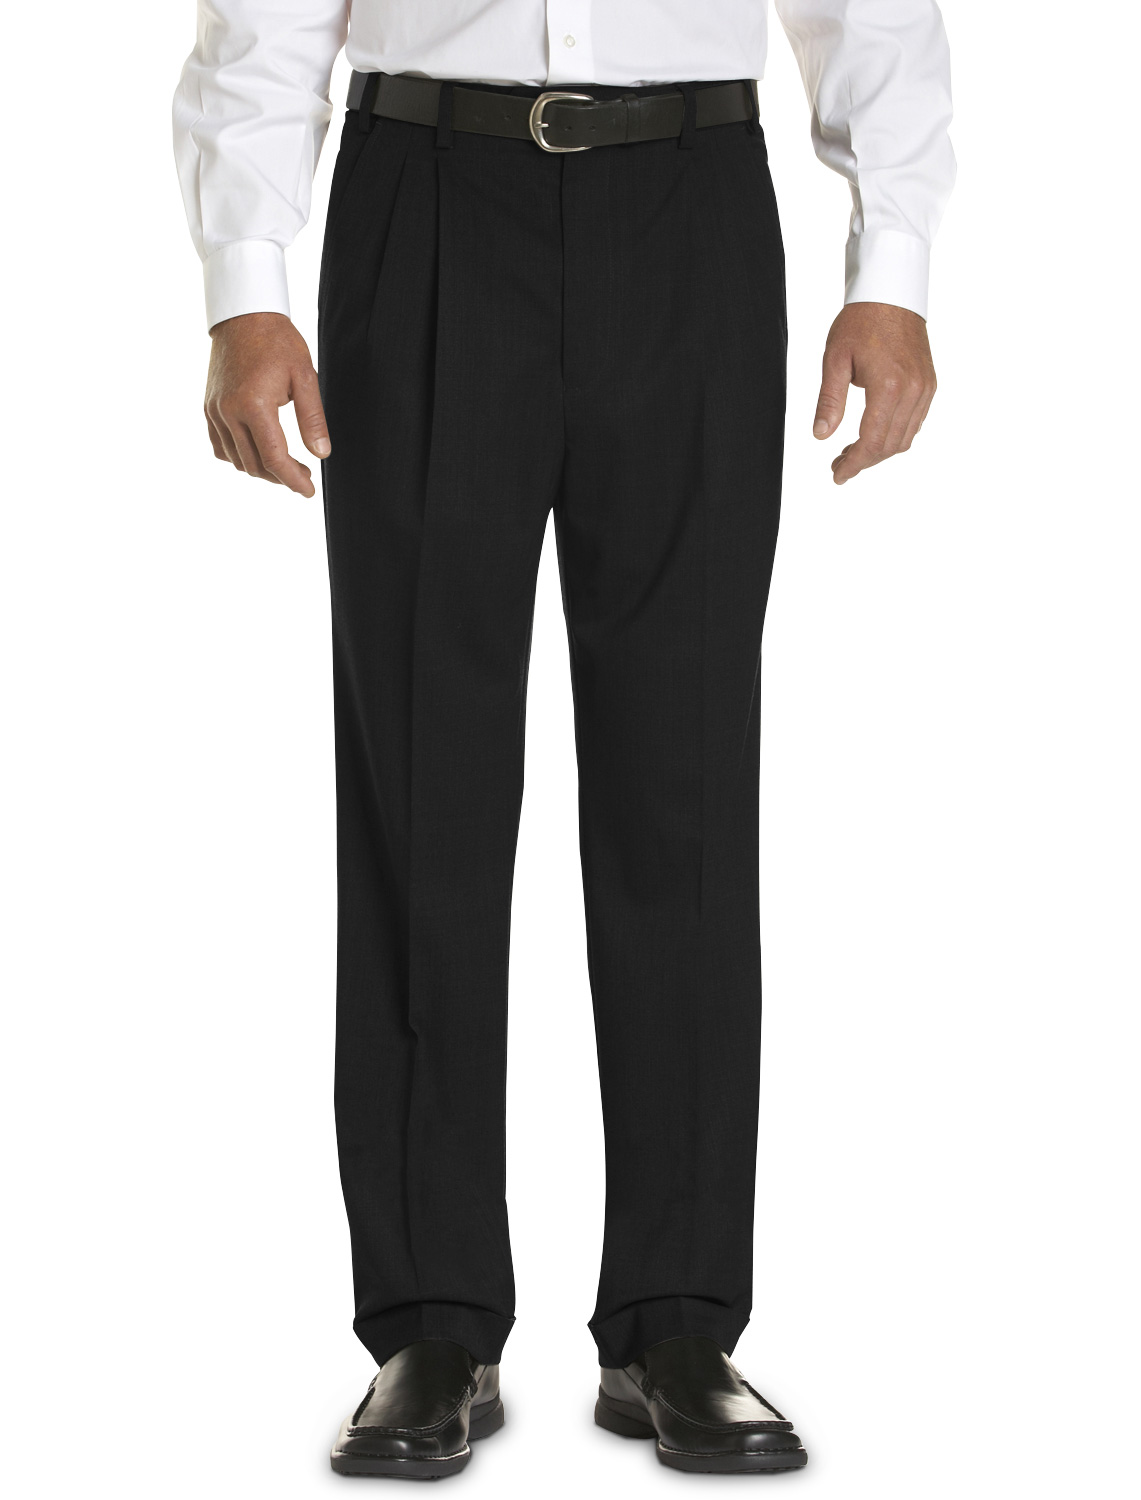 men's big & tall gold series continuous comfort pleated dress pants – unhemmed